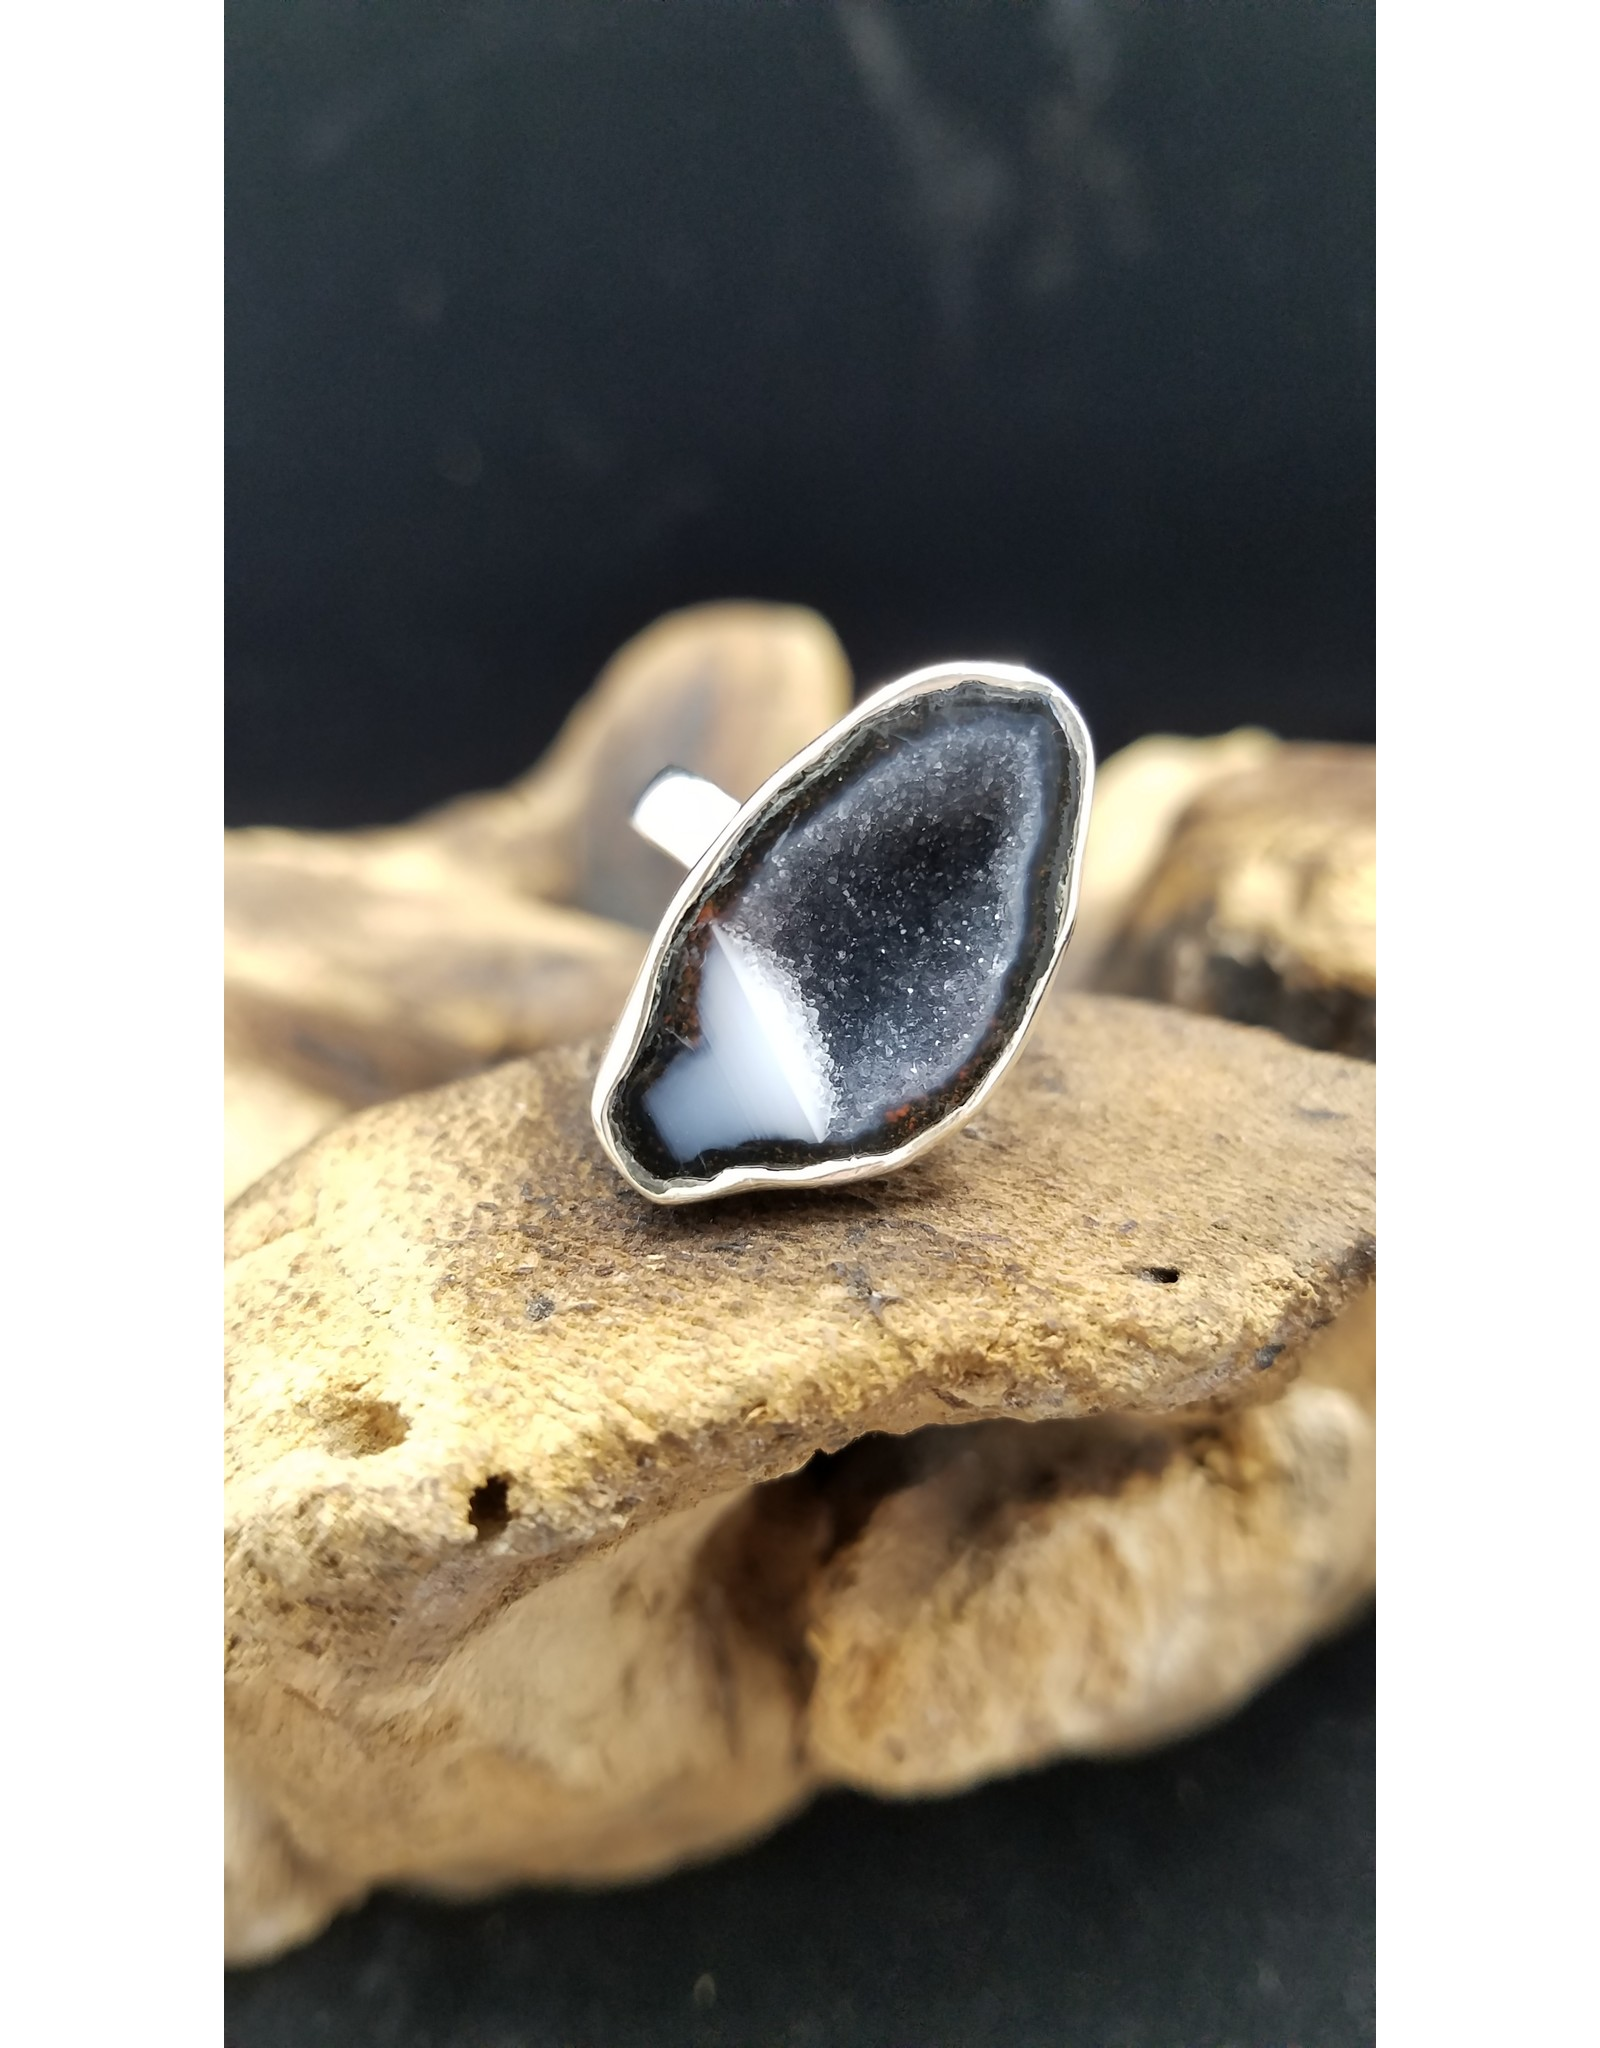 Black Agate Ring 1 - Adjustable